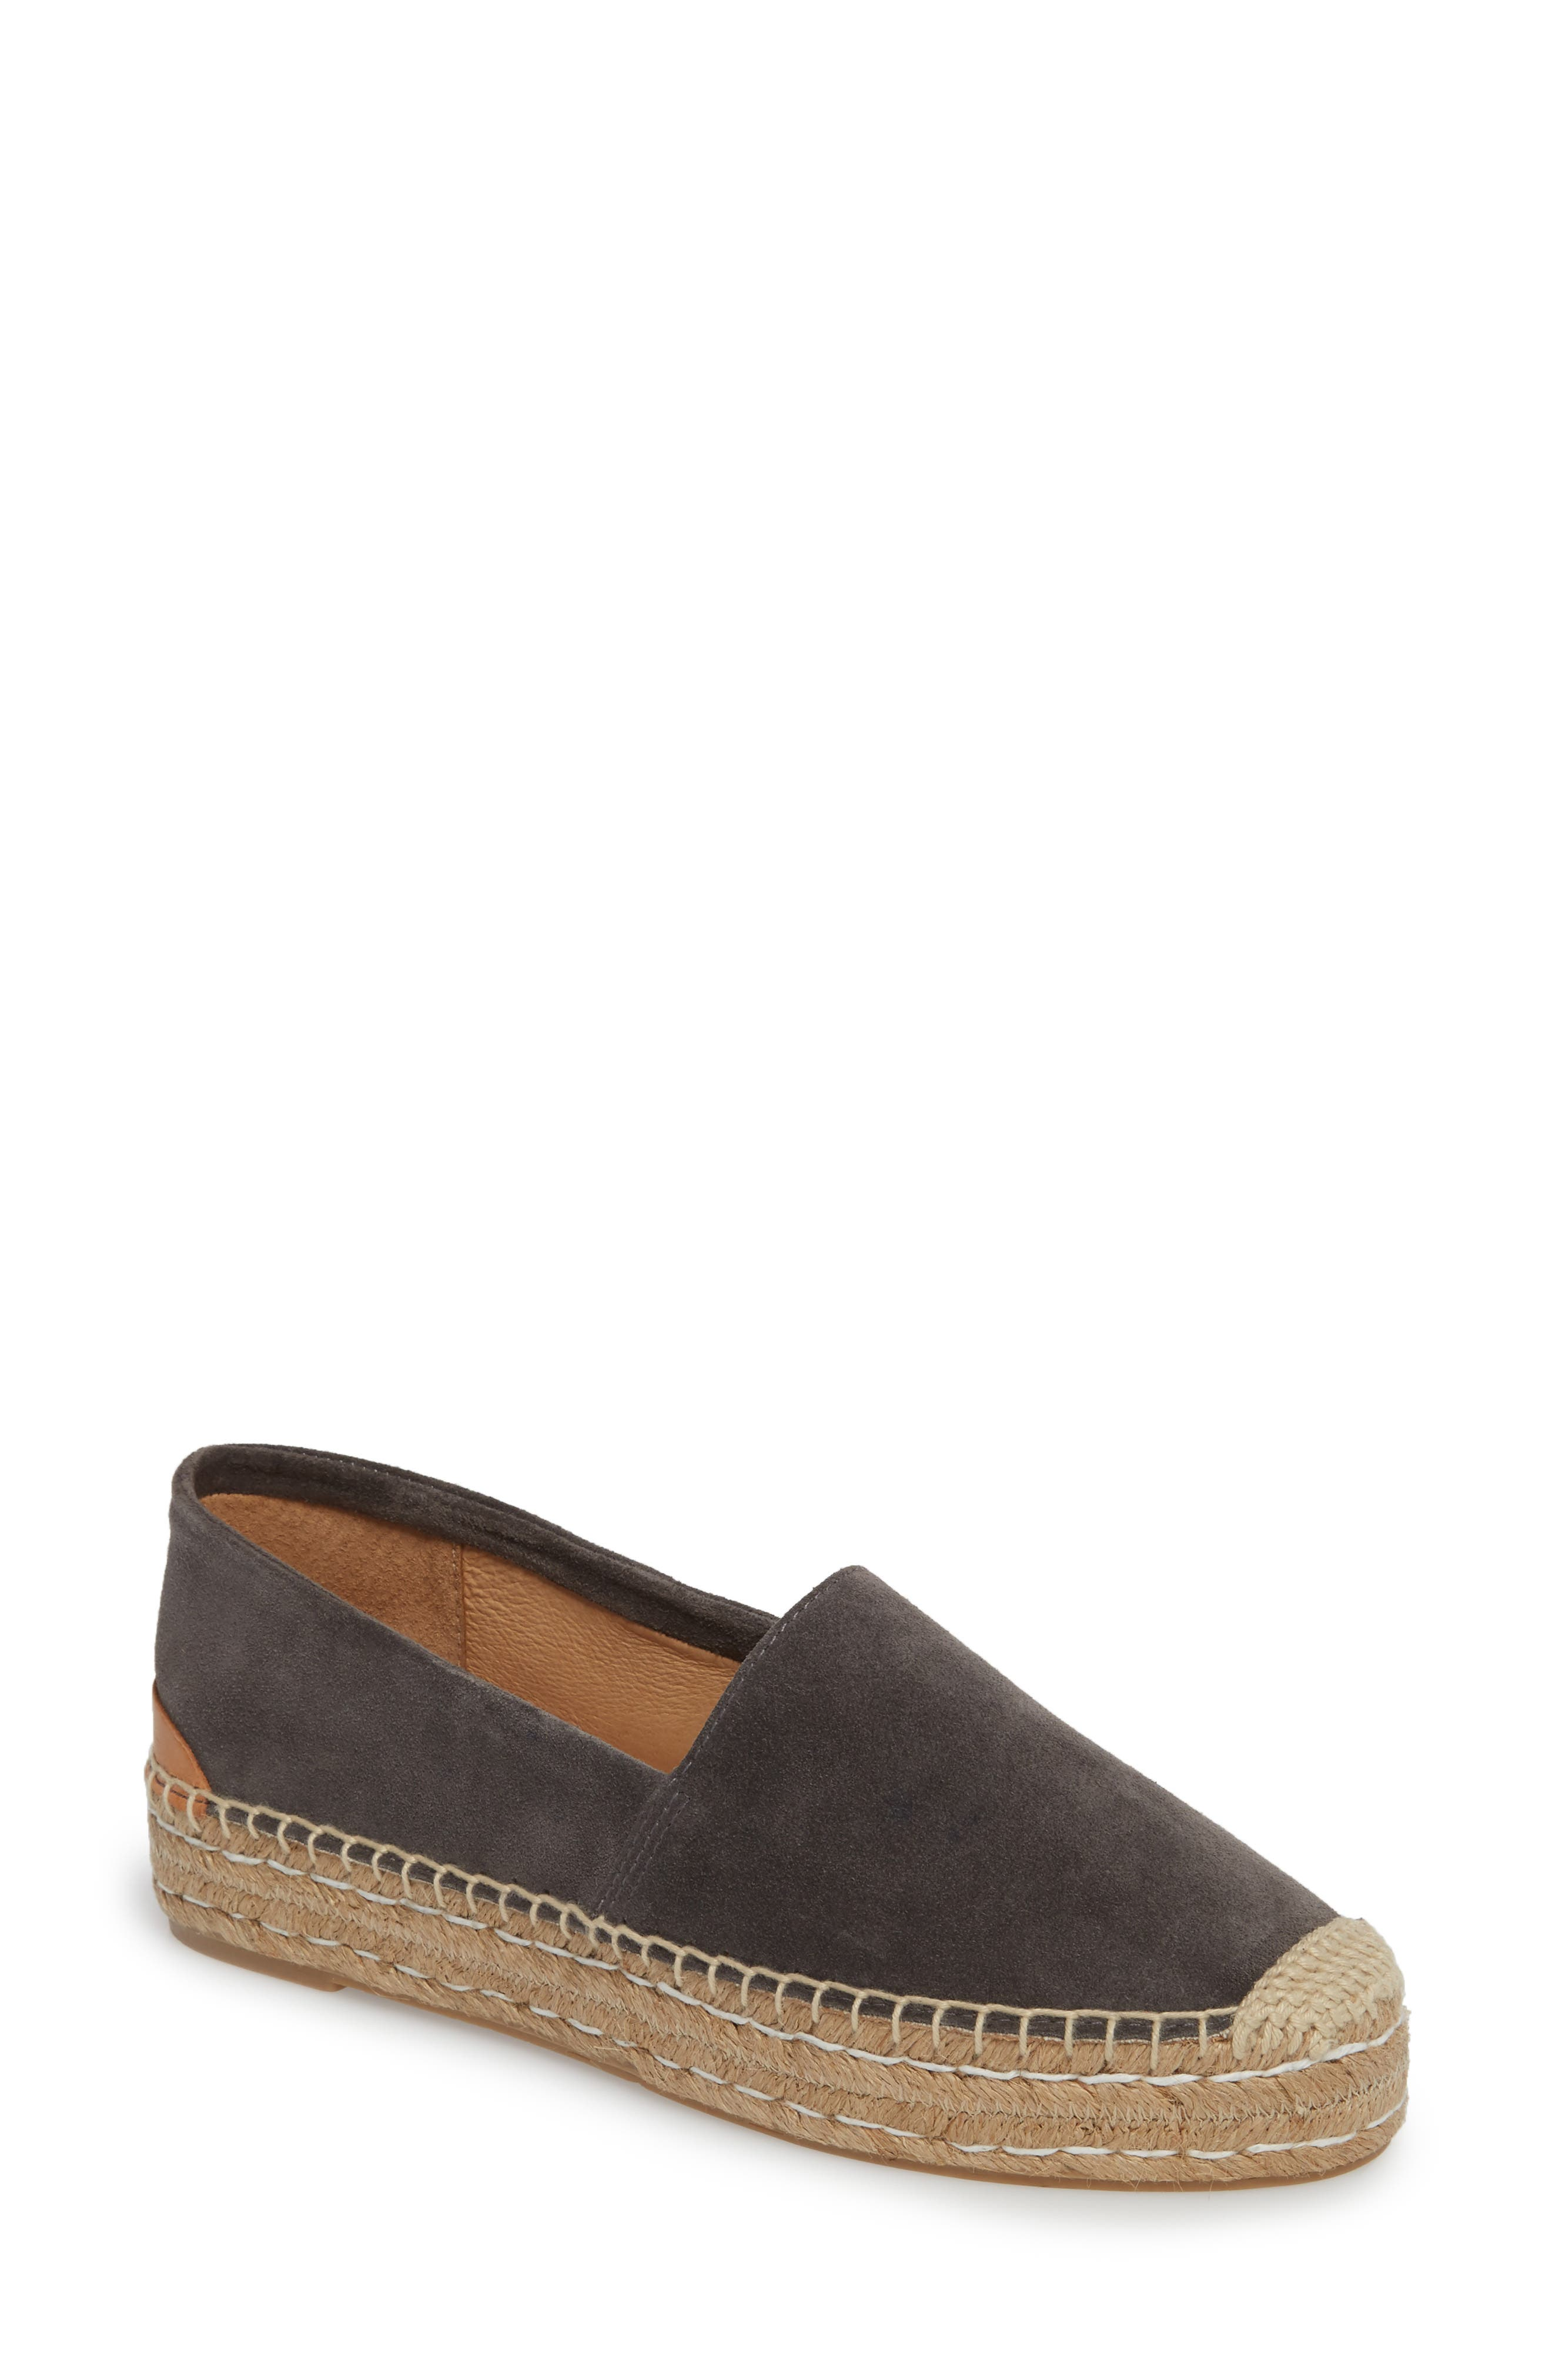 Abigail Espadrille Slip-On,                         Main,                         color, CHARCOAL SUEDE